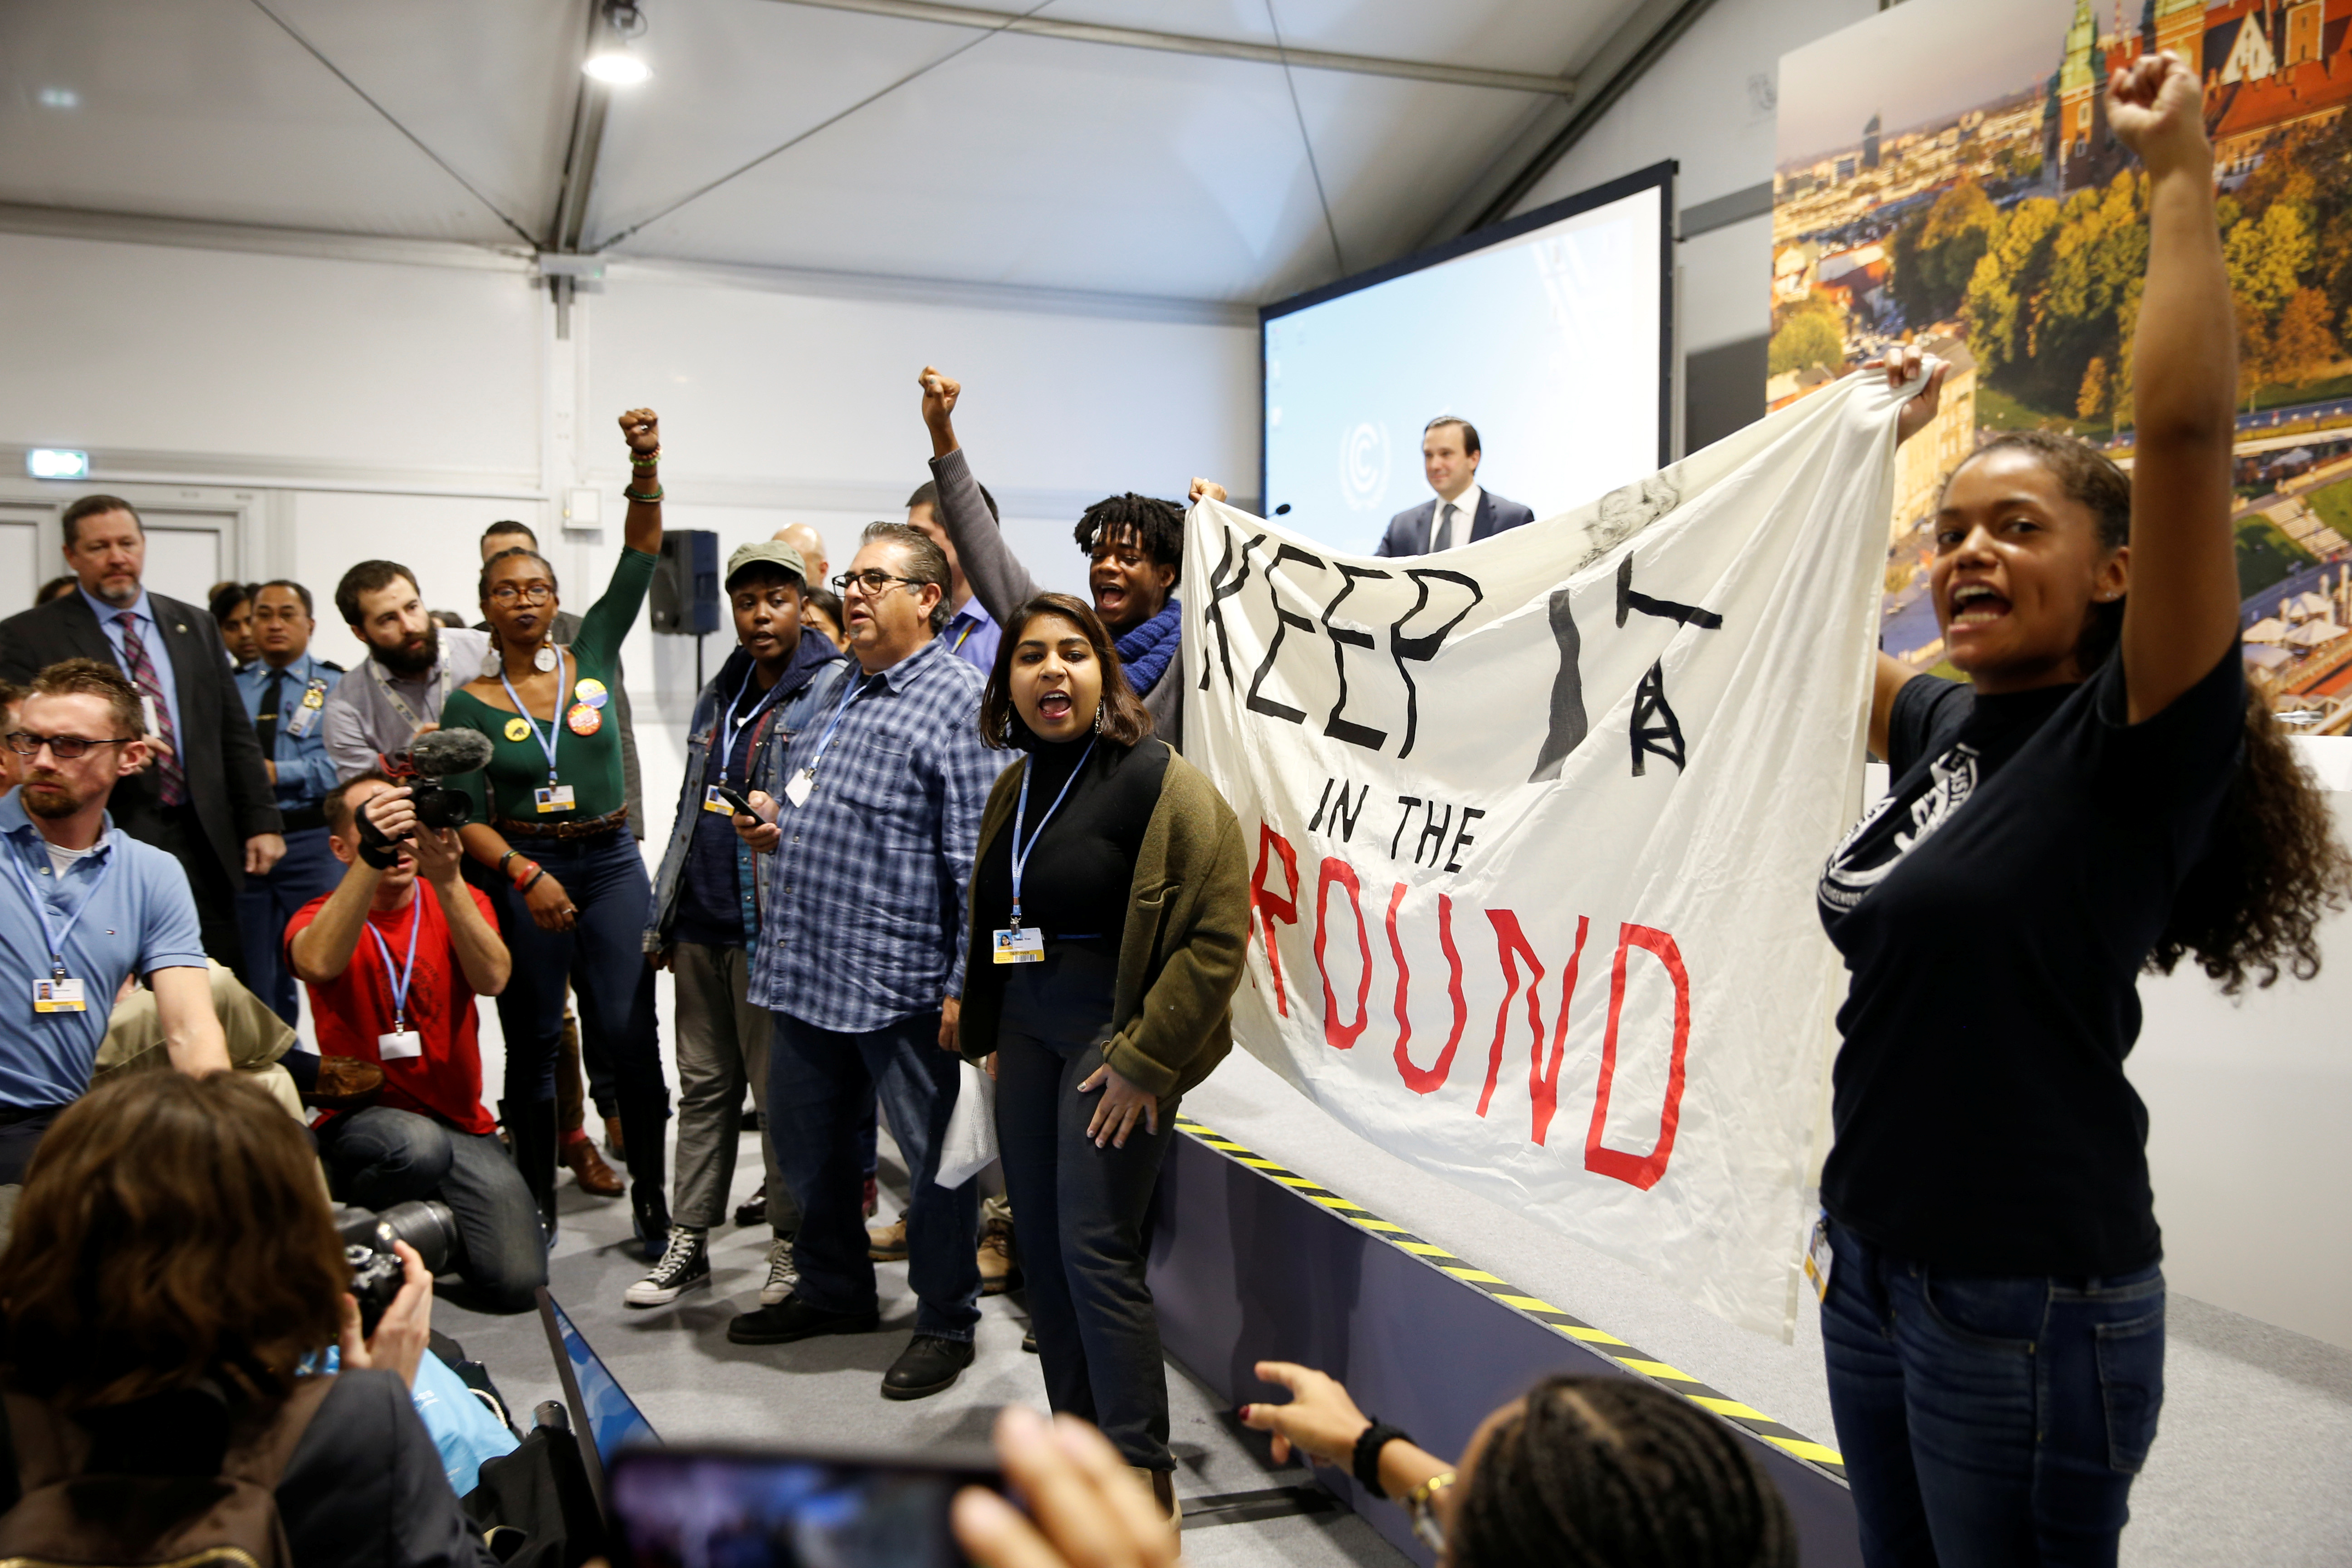 Environmental activists protest against fossil fuel during U.S. panel at the COP24 UN Climate Change Conference 2018 in Katowice